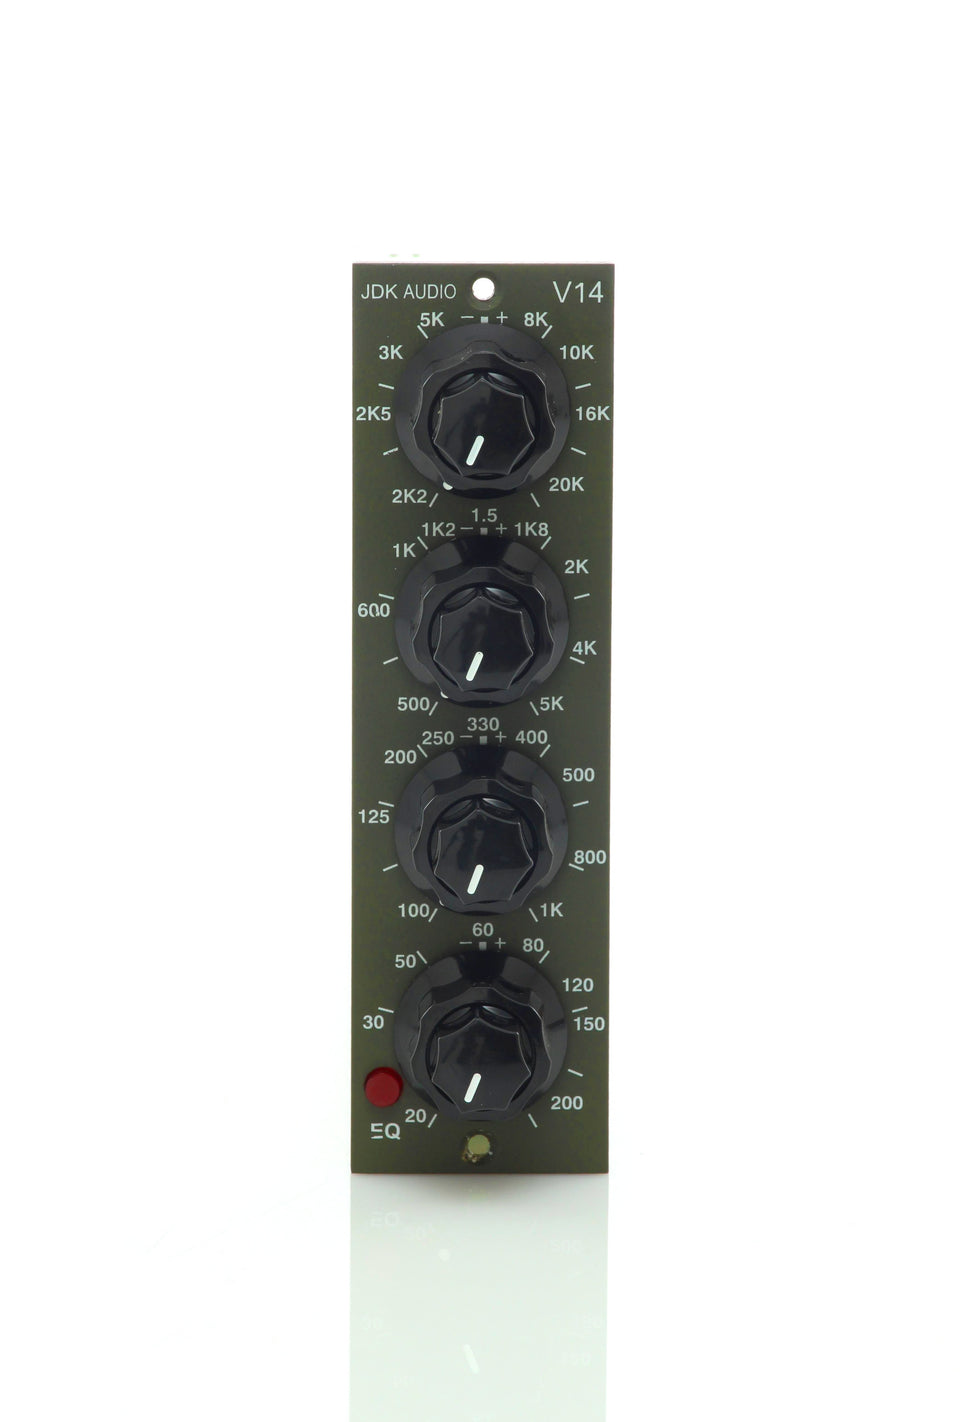 JDK Audio V14 - 4 Band VPR 500 Format Equalizer